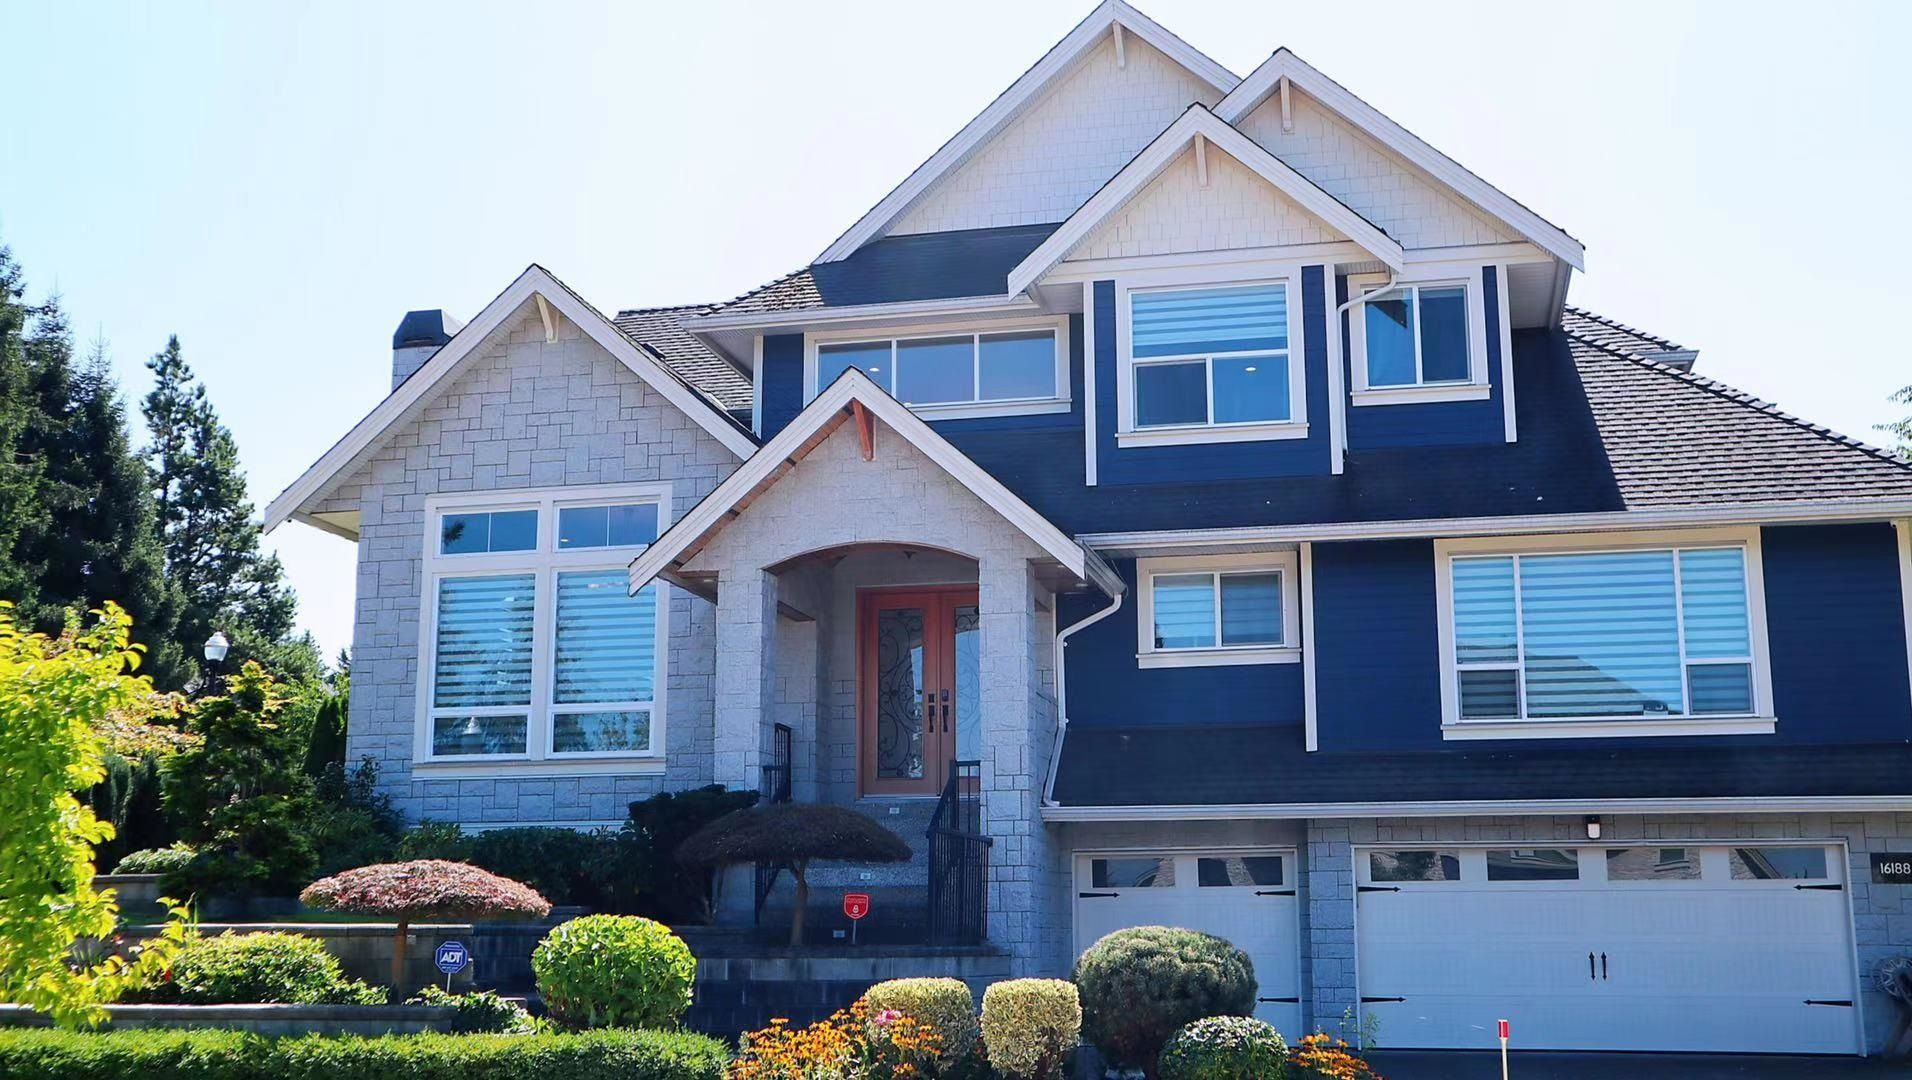 """Main Photo: 16188 28A Avenue in Surrey: Grandview Surrey House for sale in """"Morgan Heights"""" (South Surrey White Rock)  : MLS®# R2611267"""